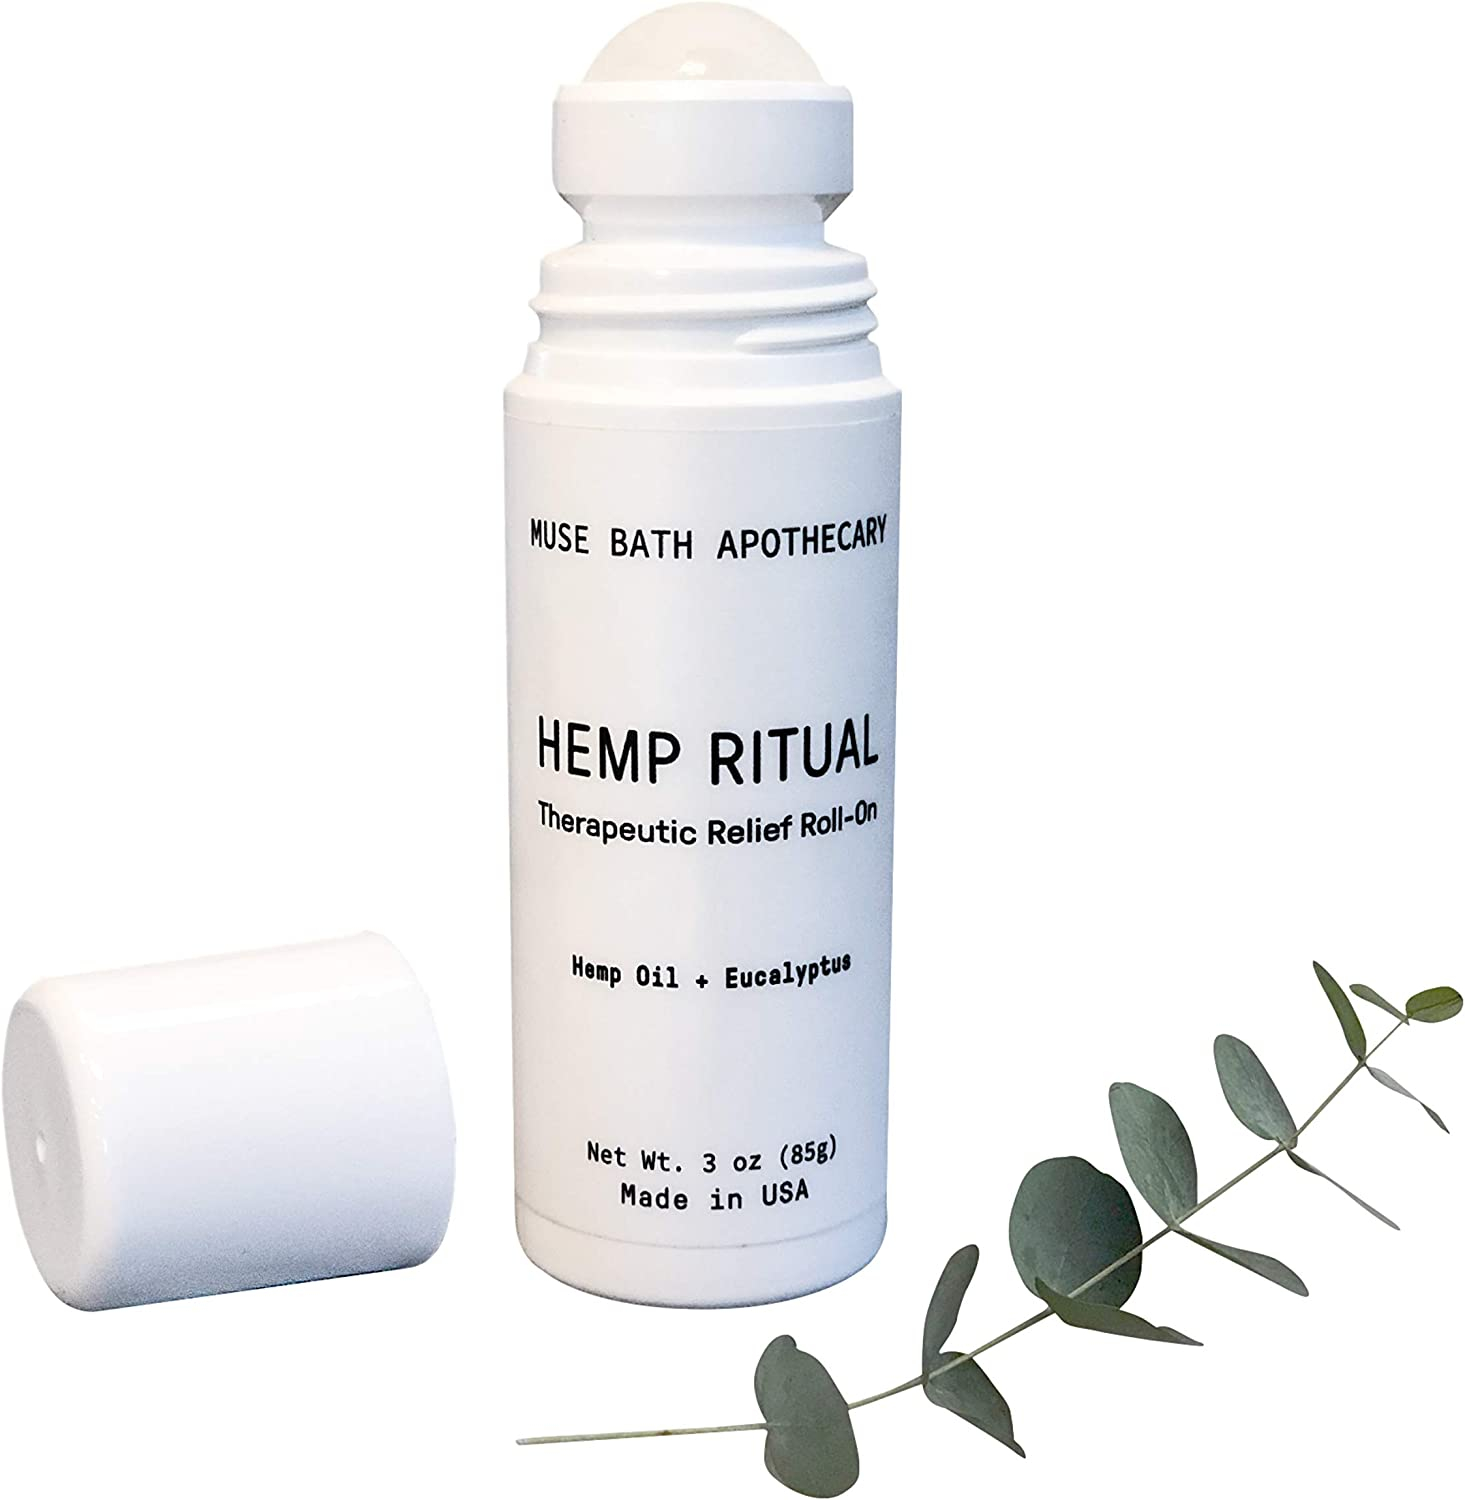 Muse Bath Apothecary Hemp Ritual - Therapeutic Relief Roll-On, 3 oz, USDA Certified Organic Hemp Seed Oil, Post-Workout Recovery, Helps Relieve Arthritis, Muscle & Joint Pain, Tension & Discomfort